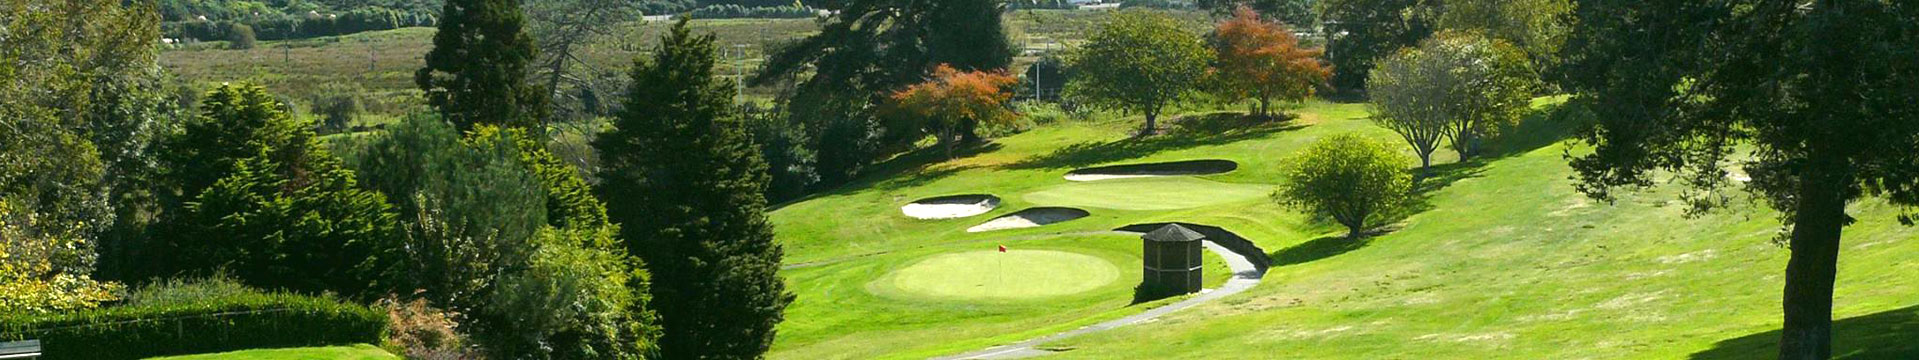 <strong>TAURANGA GOLF CLUB<span><b>view larger</b></span></strong><i>&rarr;</i>